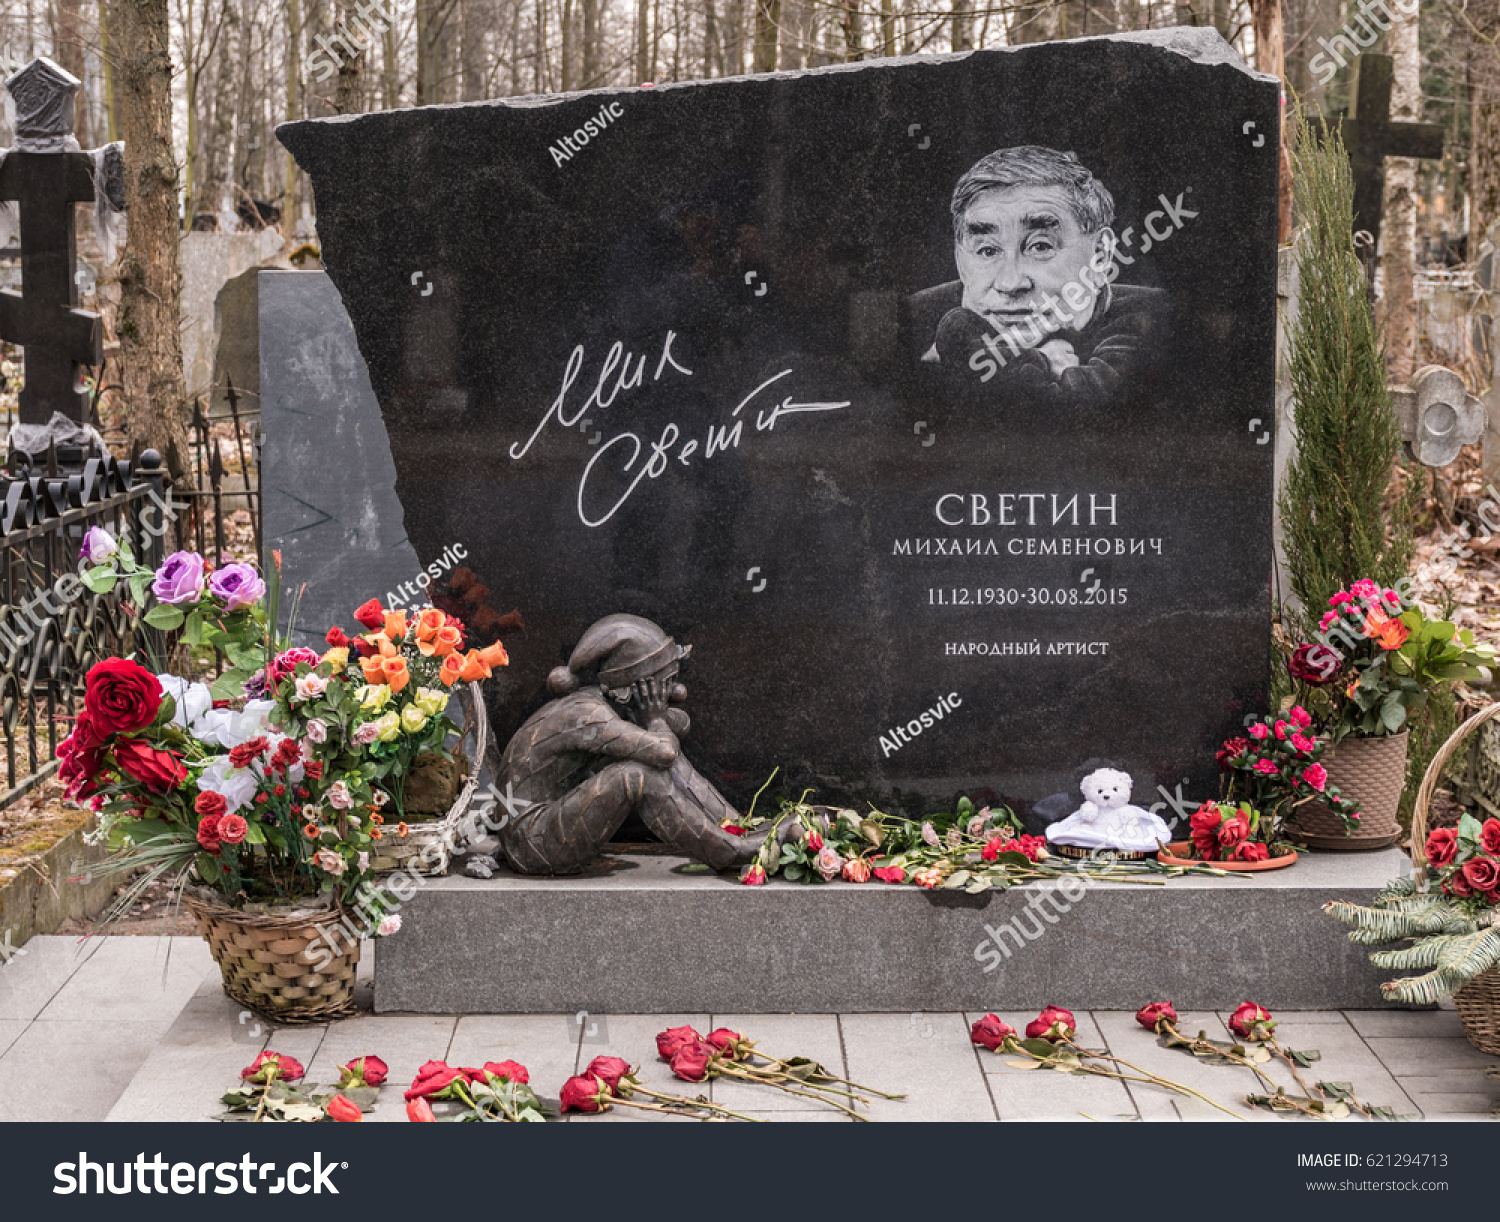 Famous actors of theater and cinema of Russia